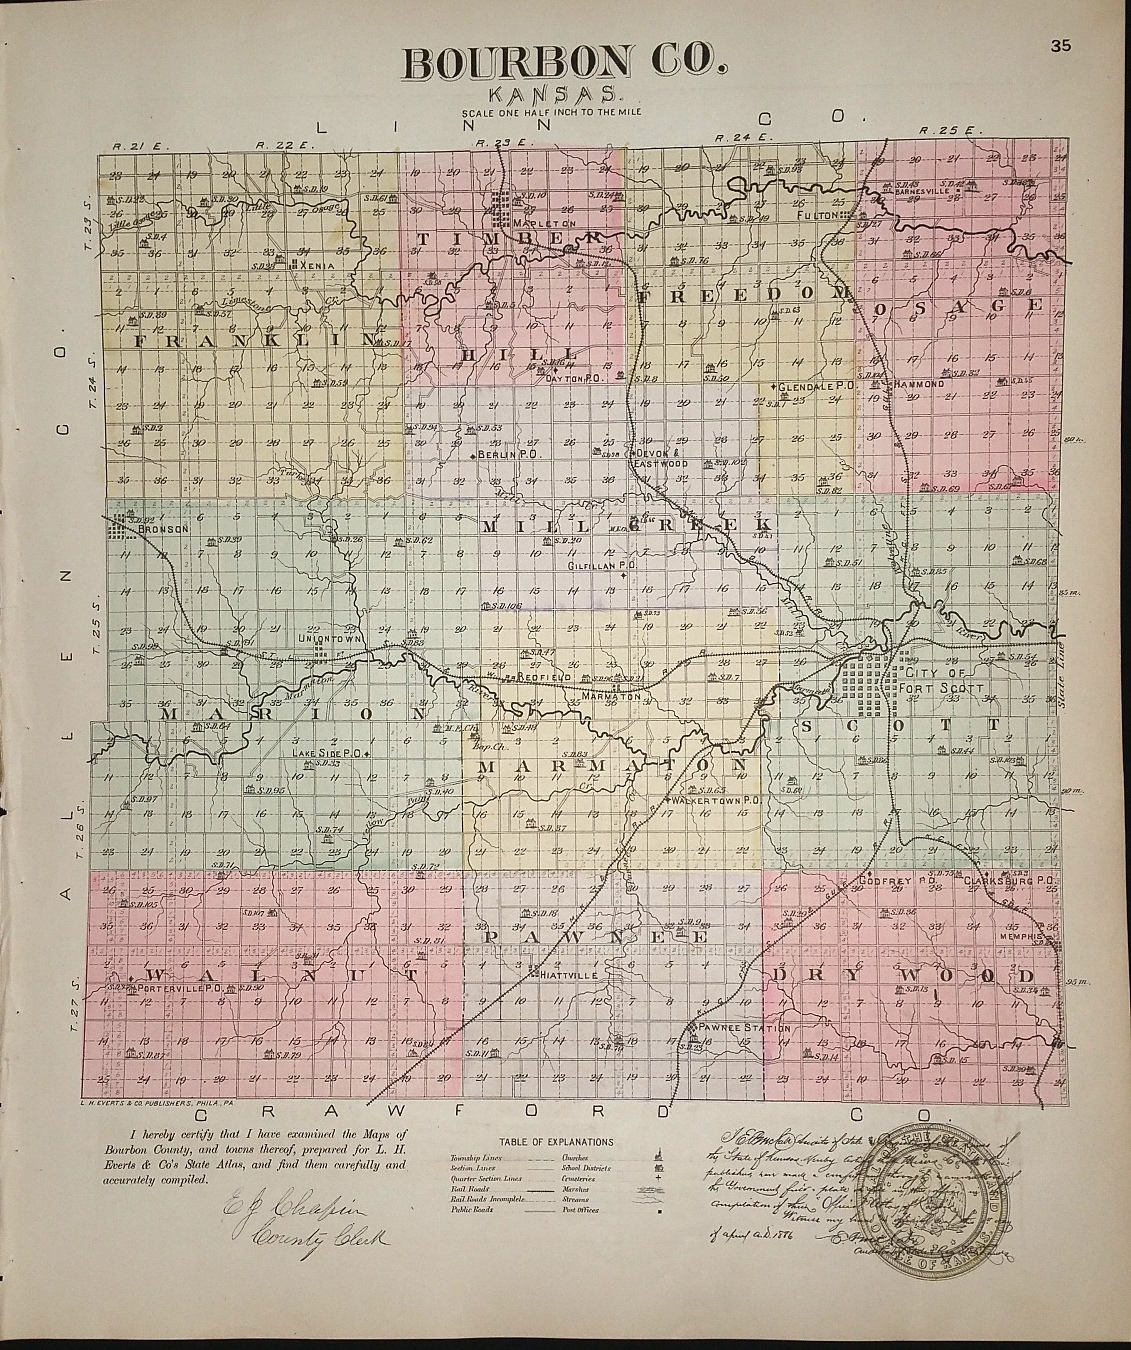 Image for [Map] Bourbon Co. [backed with] Memphis, Pawnee, Bronson, Redfield, & Xenia (of Bourbon County, Kansas0, Xenia, & McLouth (of Jefferson Co.)